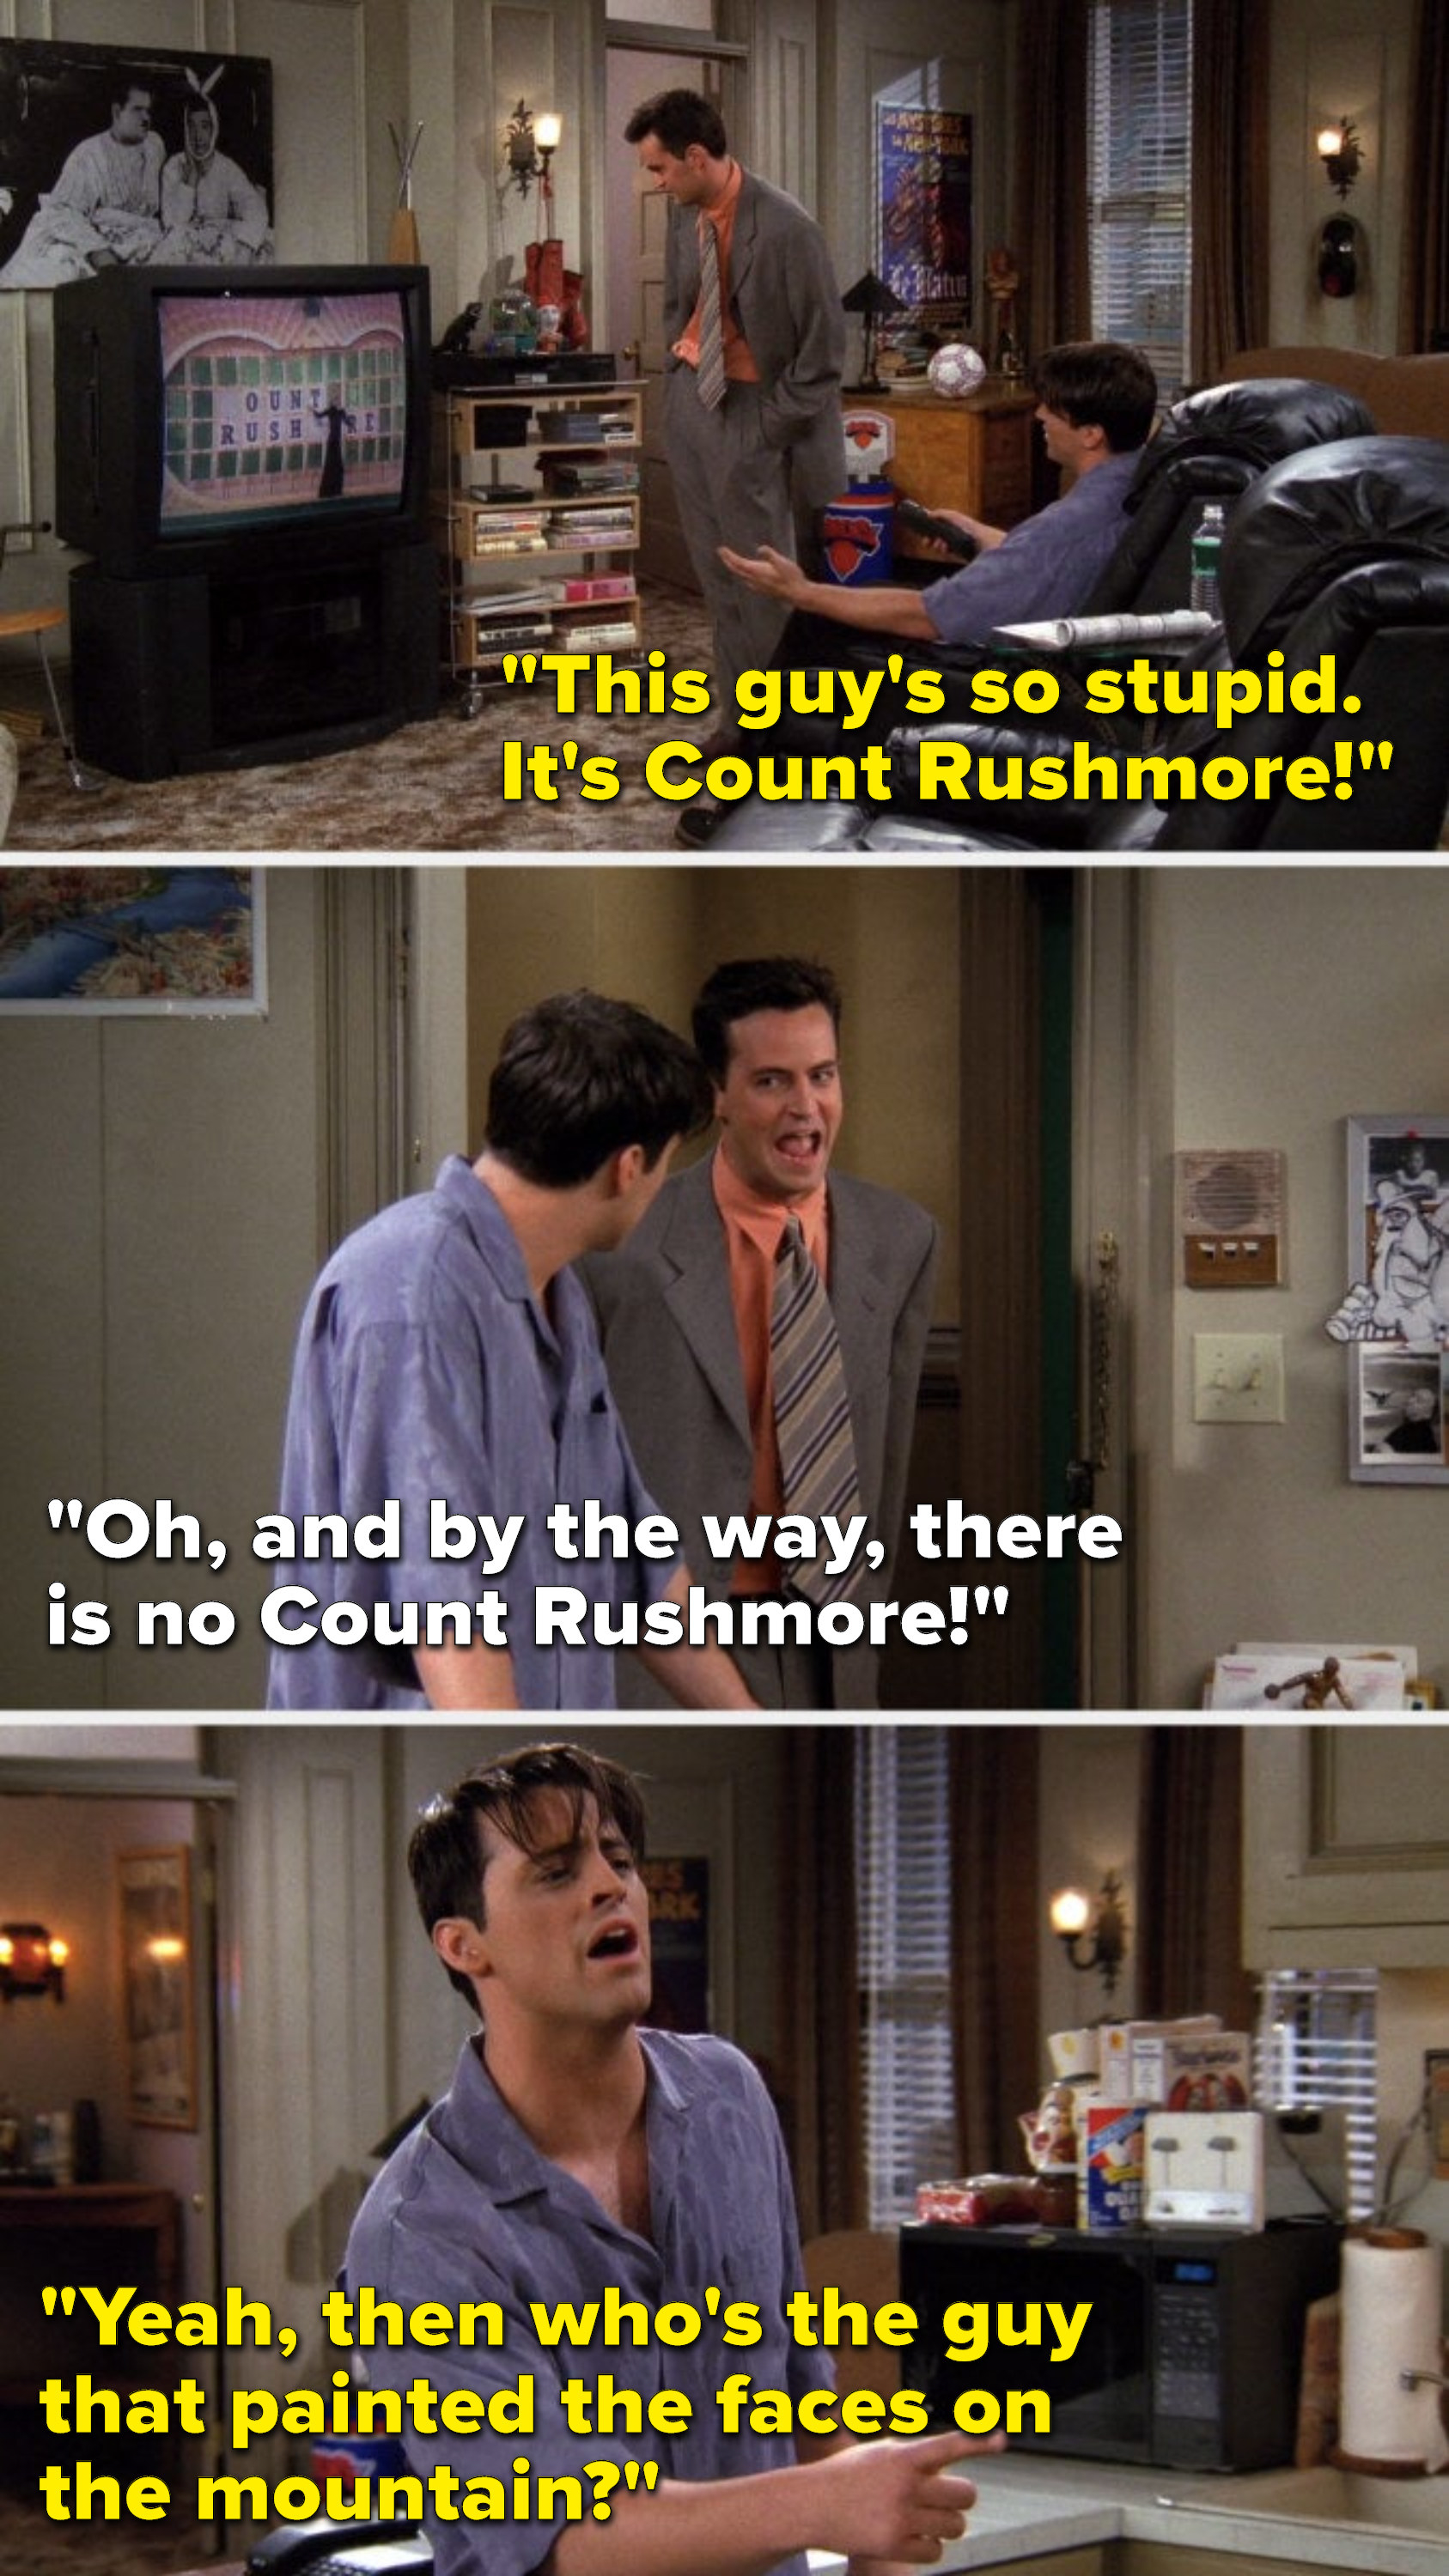 """Joey says, """"This guy's so stupid, it's Count Rushmore,"""" later Chandler says, """"Oh, and by the way, there is no Count Rushmore,"""" and Joey says, """"Yeah, then who's the guy that painted the faces on the mountain"""""""